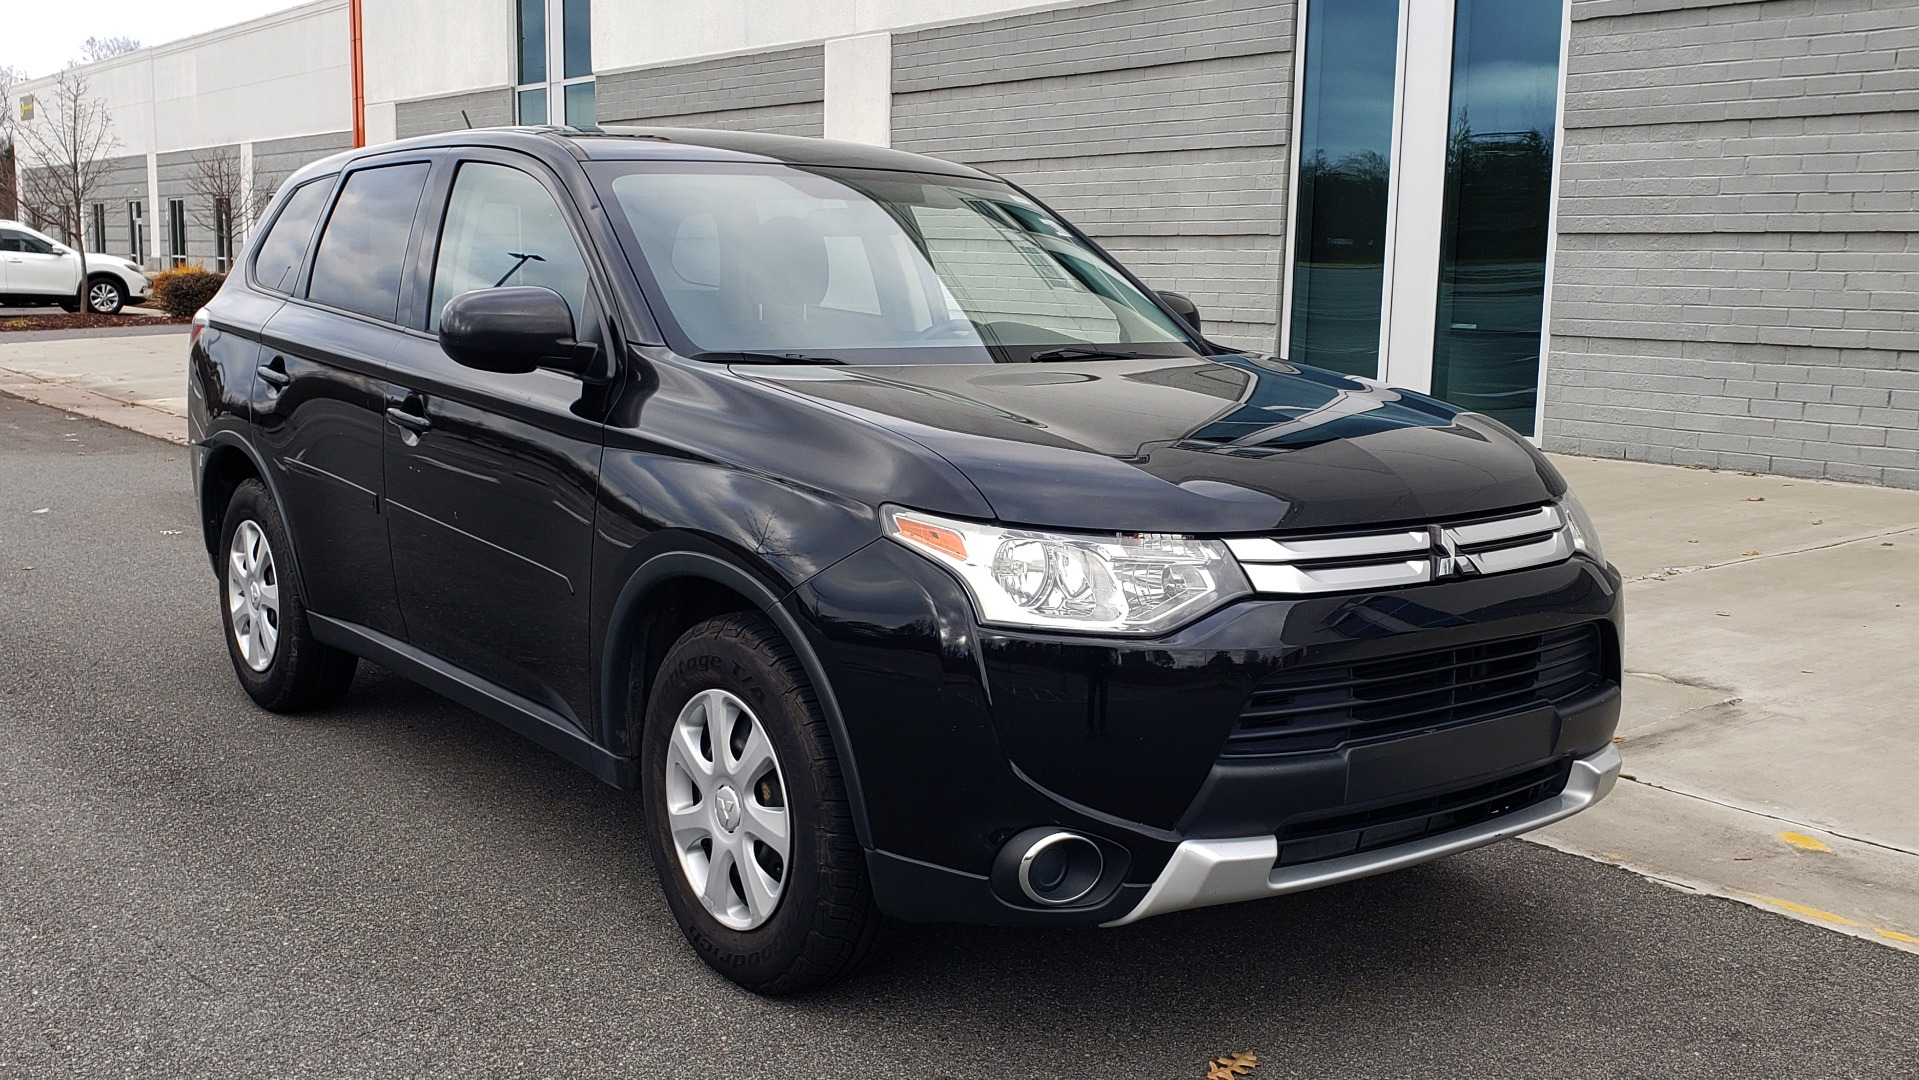 Used 2015 Mitsubishi OUTLANDER ES 2.4L SUV / CVT / FWD / KEYLESS ENTRY / 16-IN WHEELS for sale $12,995 at Formula Imports in Charlotte NC 28227 8